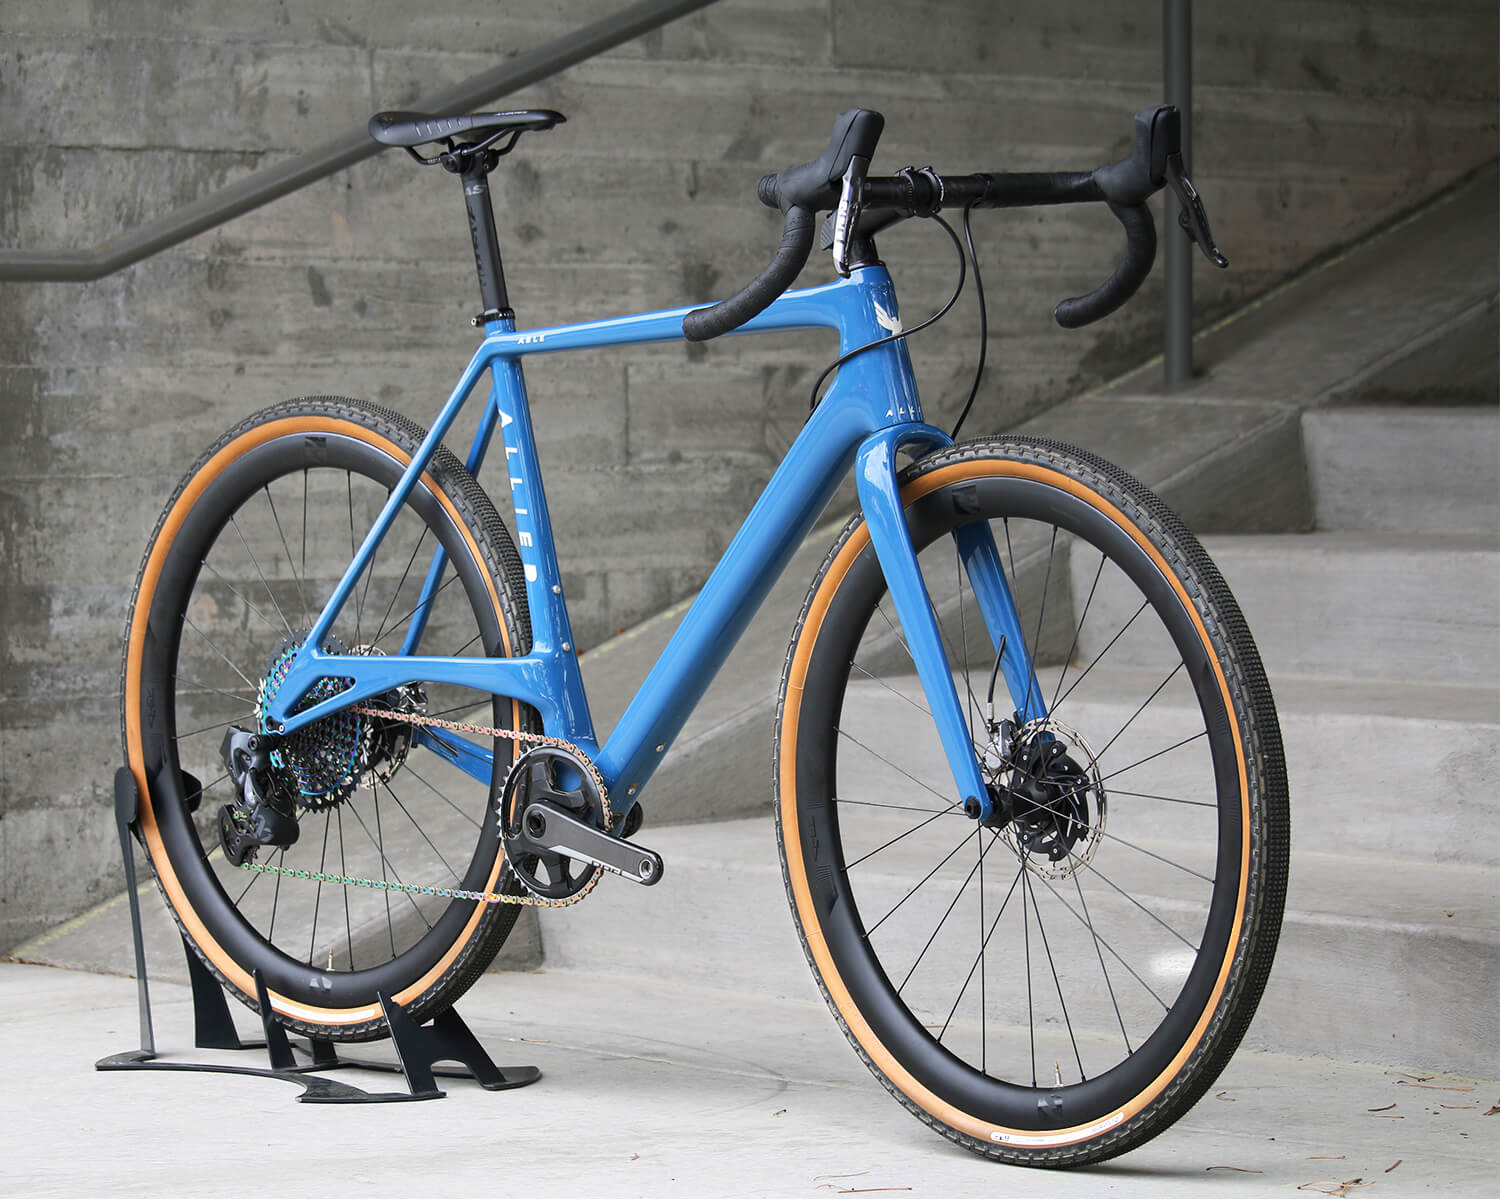 Allied Able - Contender Bicycles